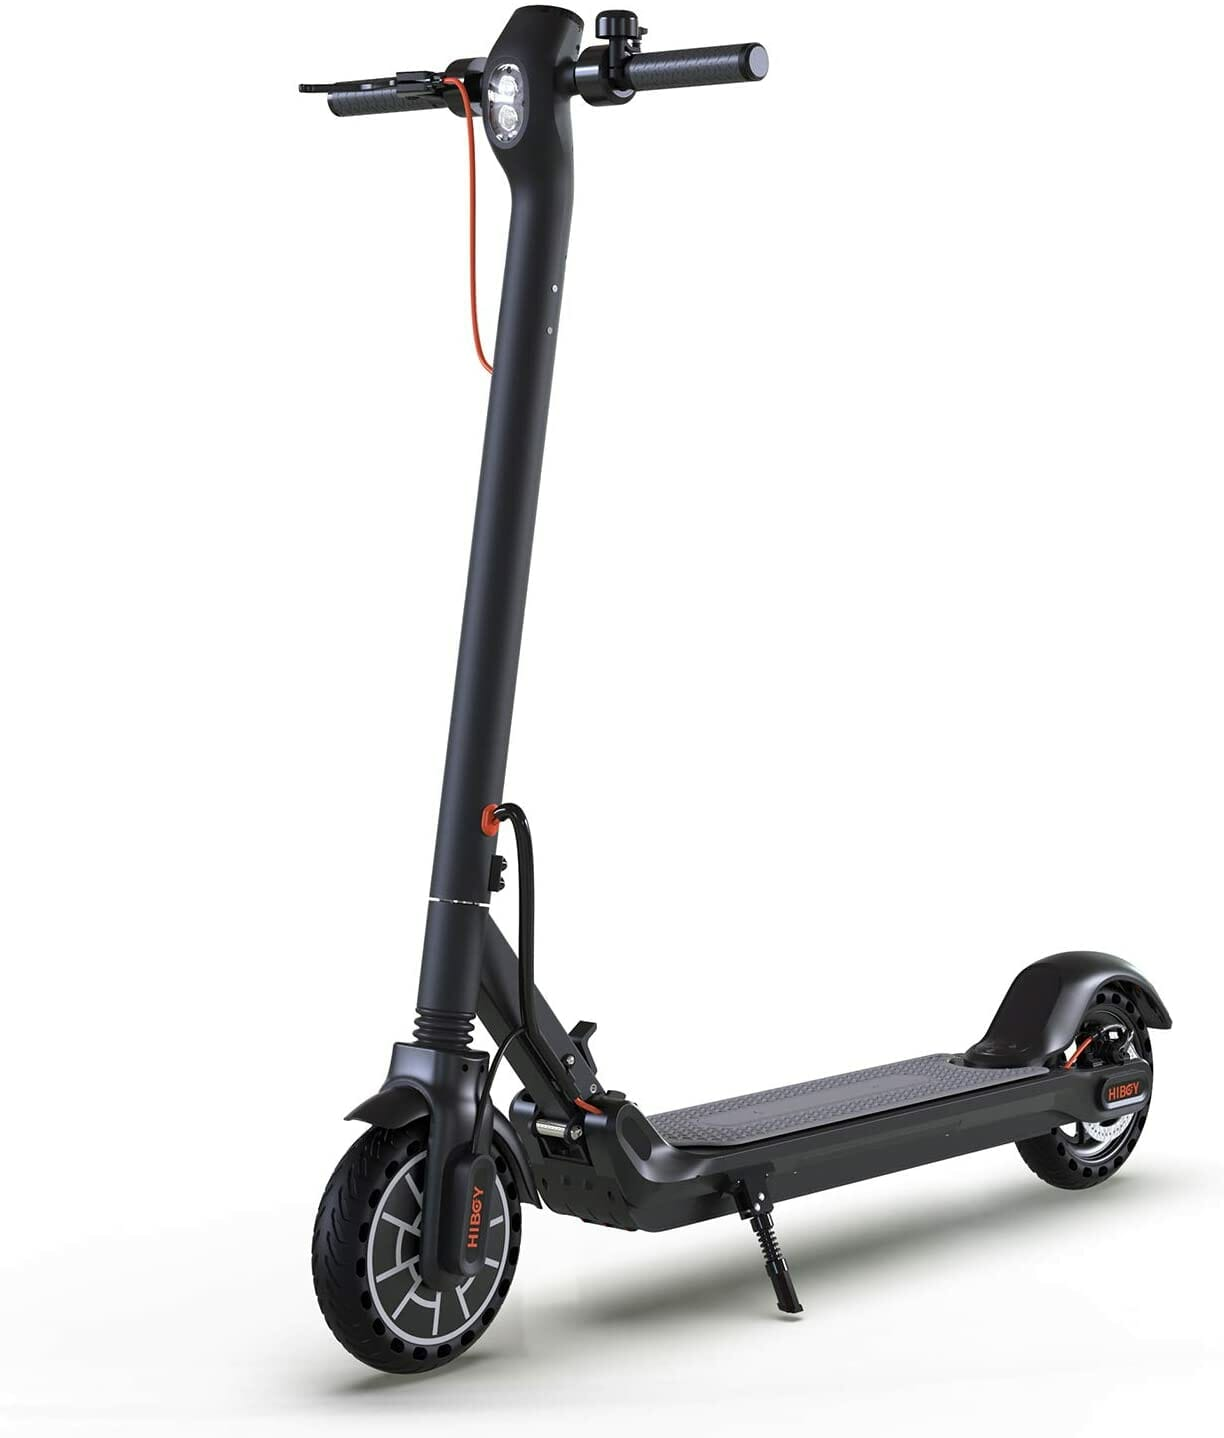 Hiboy max electric scooter review